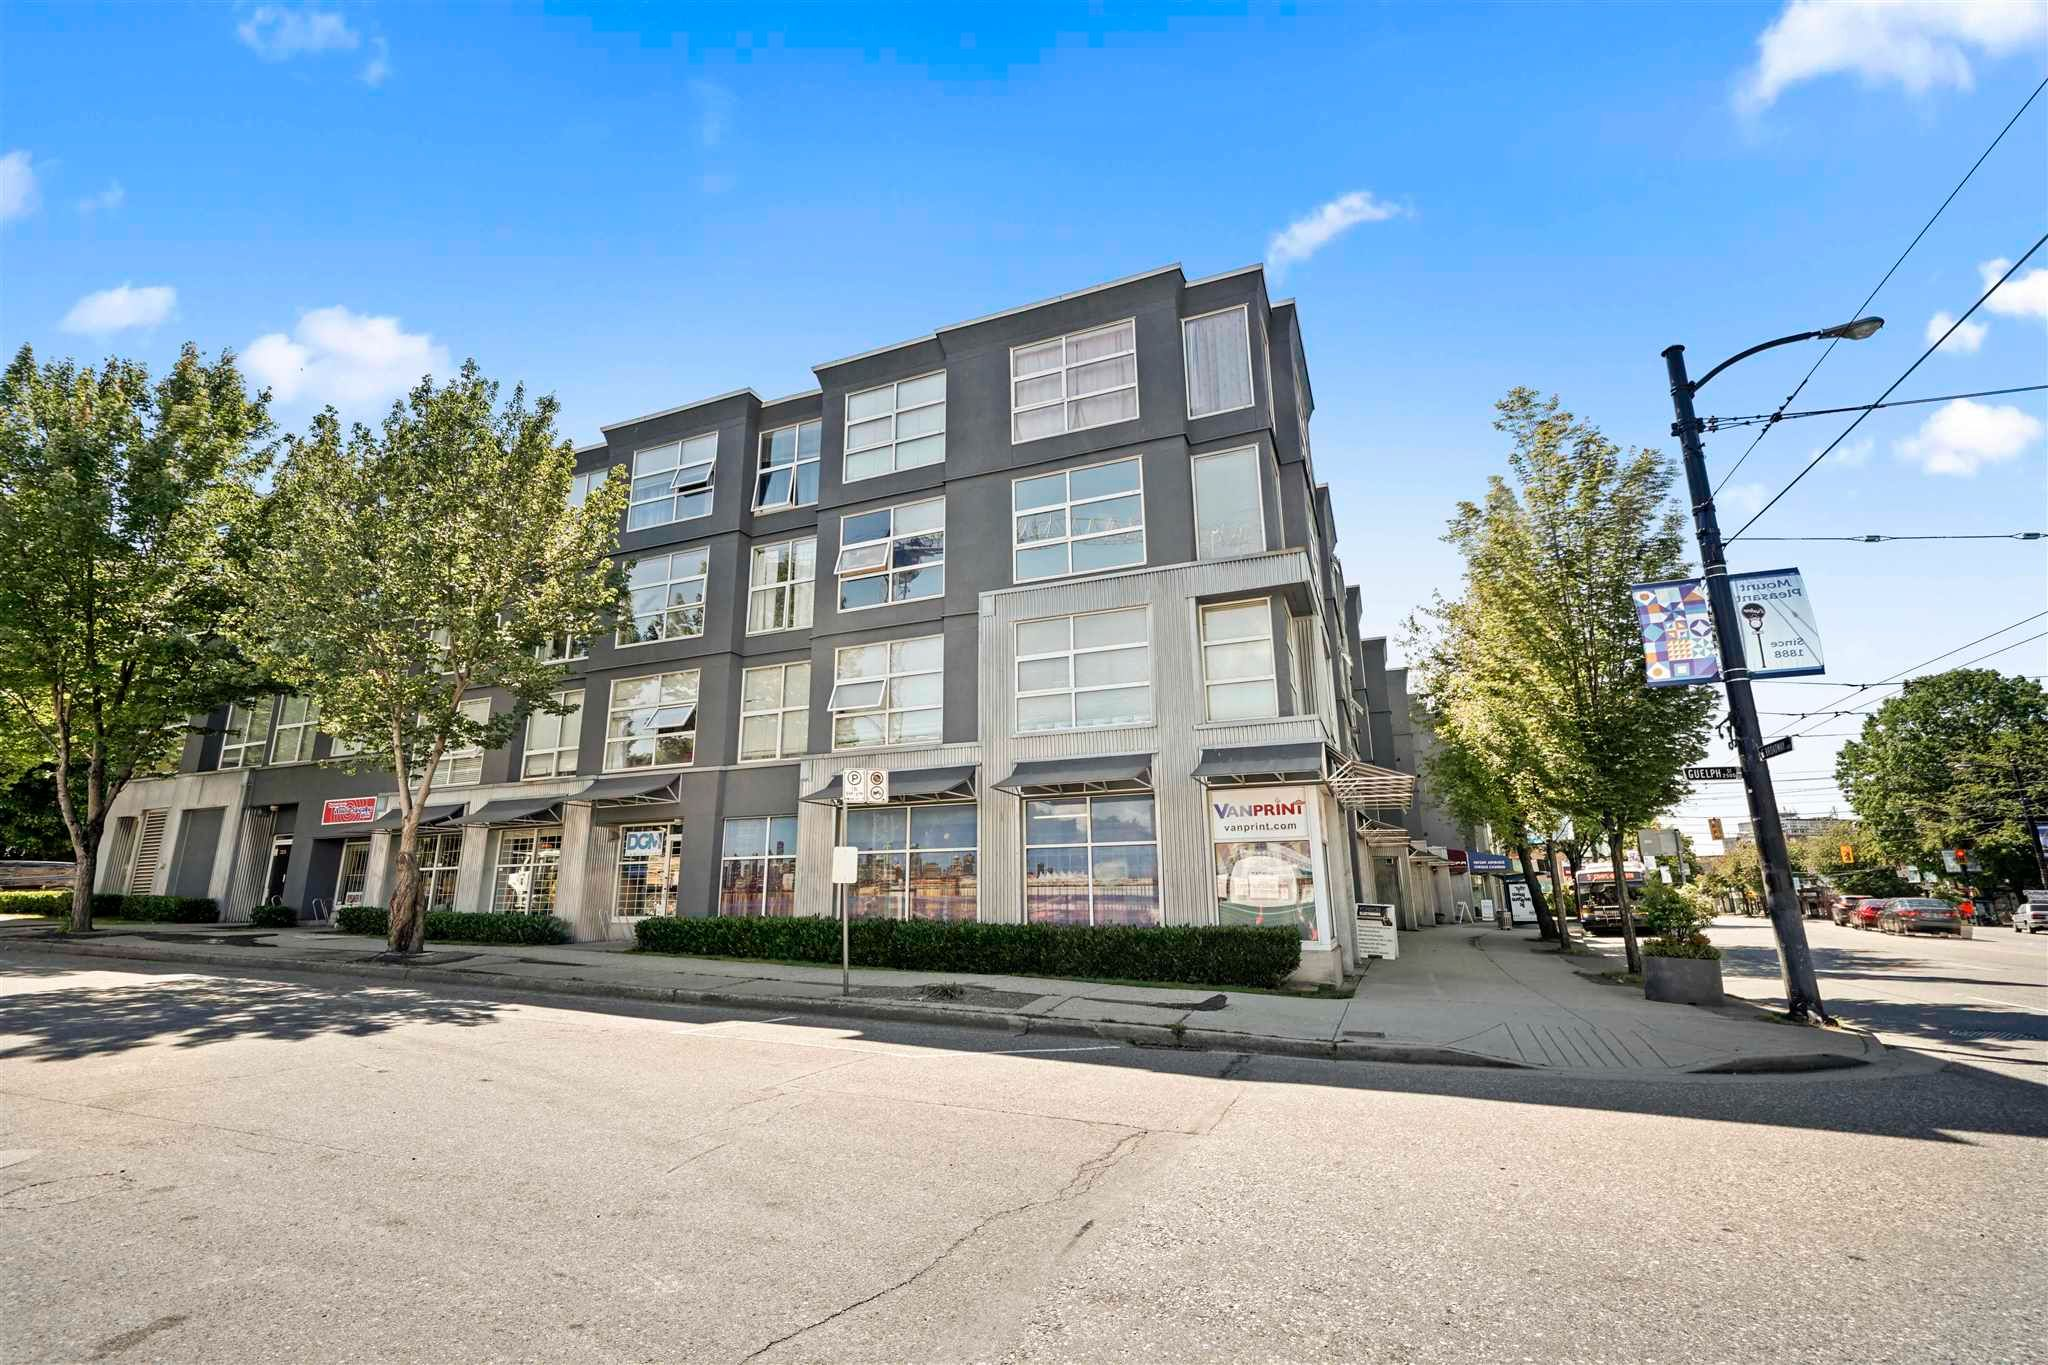 Main Photo: 320 418 E BROADWAY in Vancouver: Mount Pleasant VE Condo for sale (Vancouver East)  : MLS®# R2594278